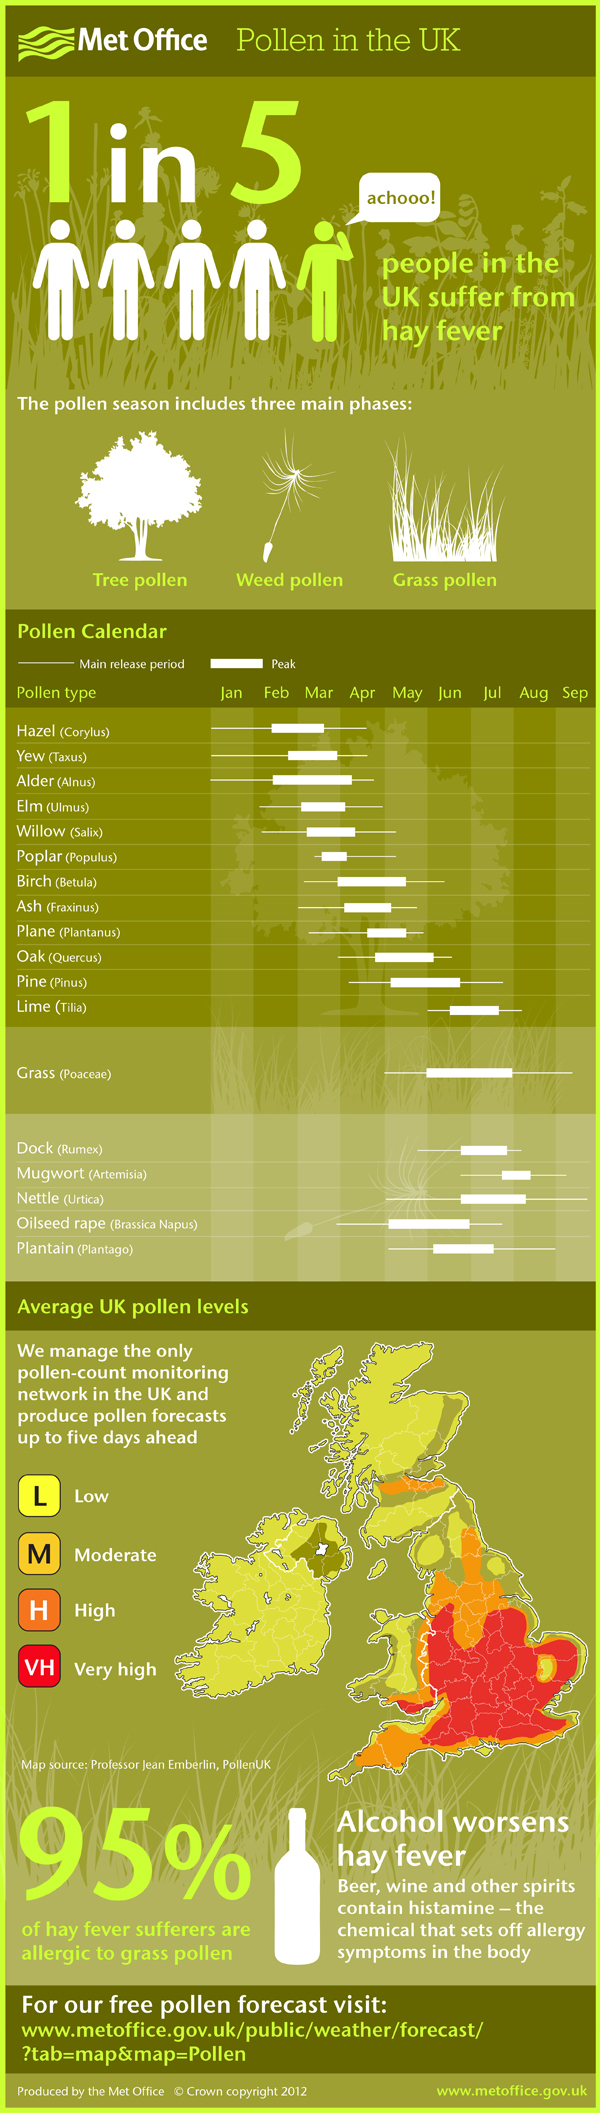 Met Office - Pollen infographic